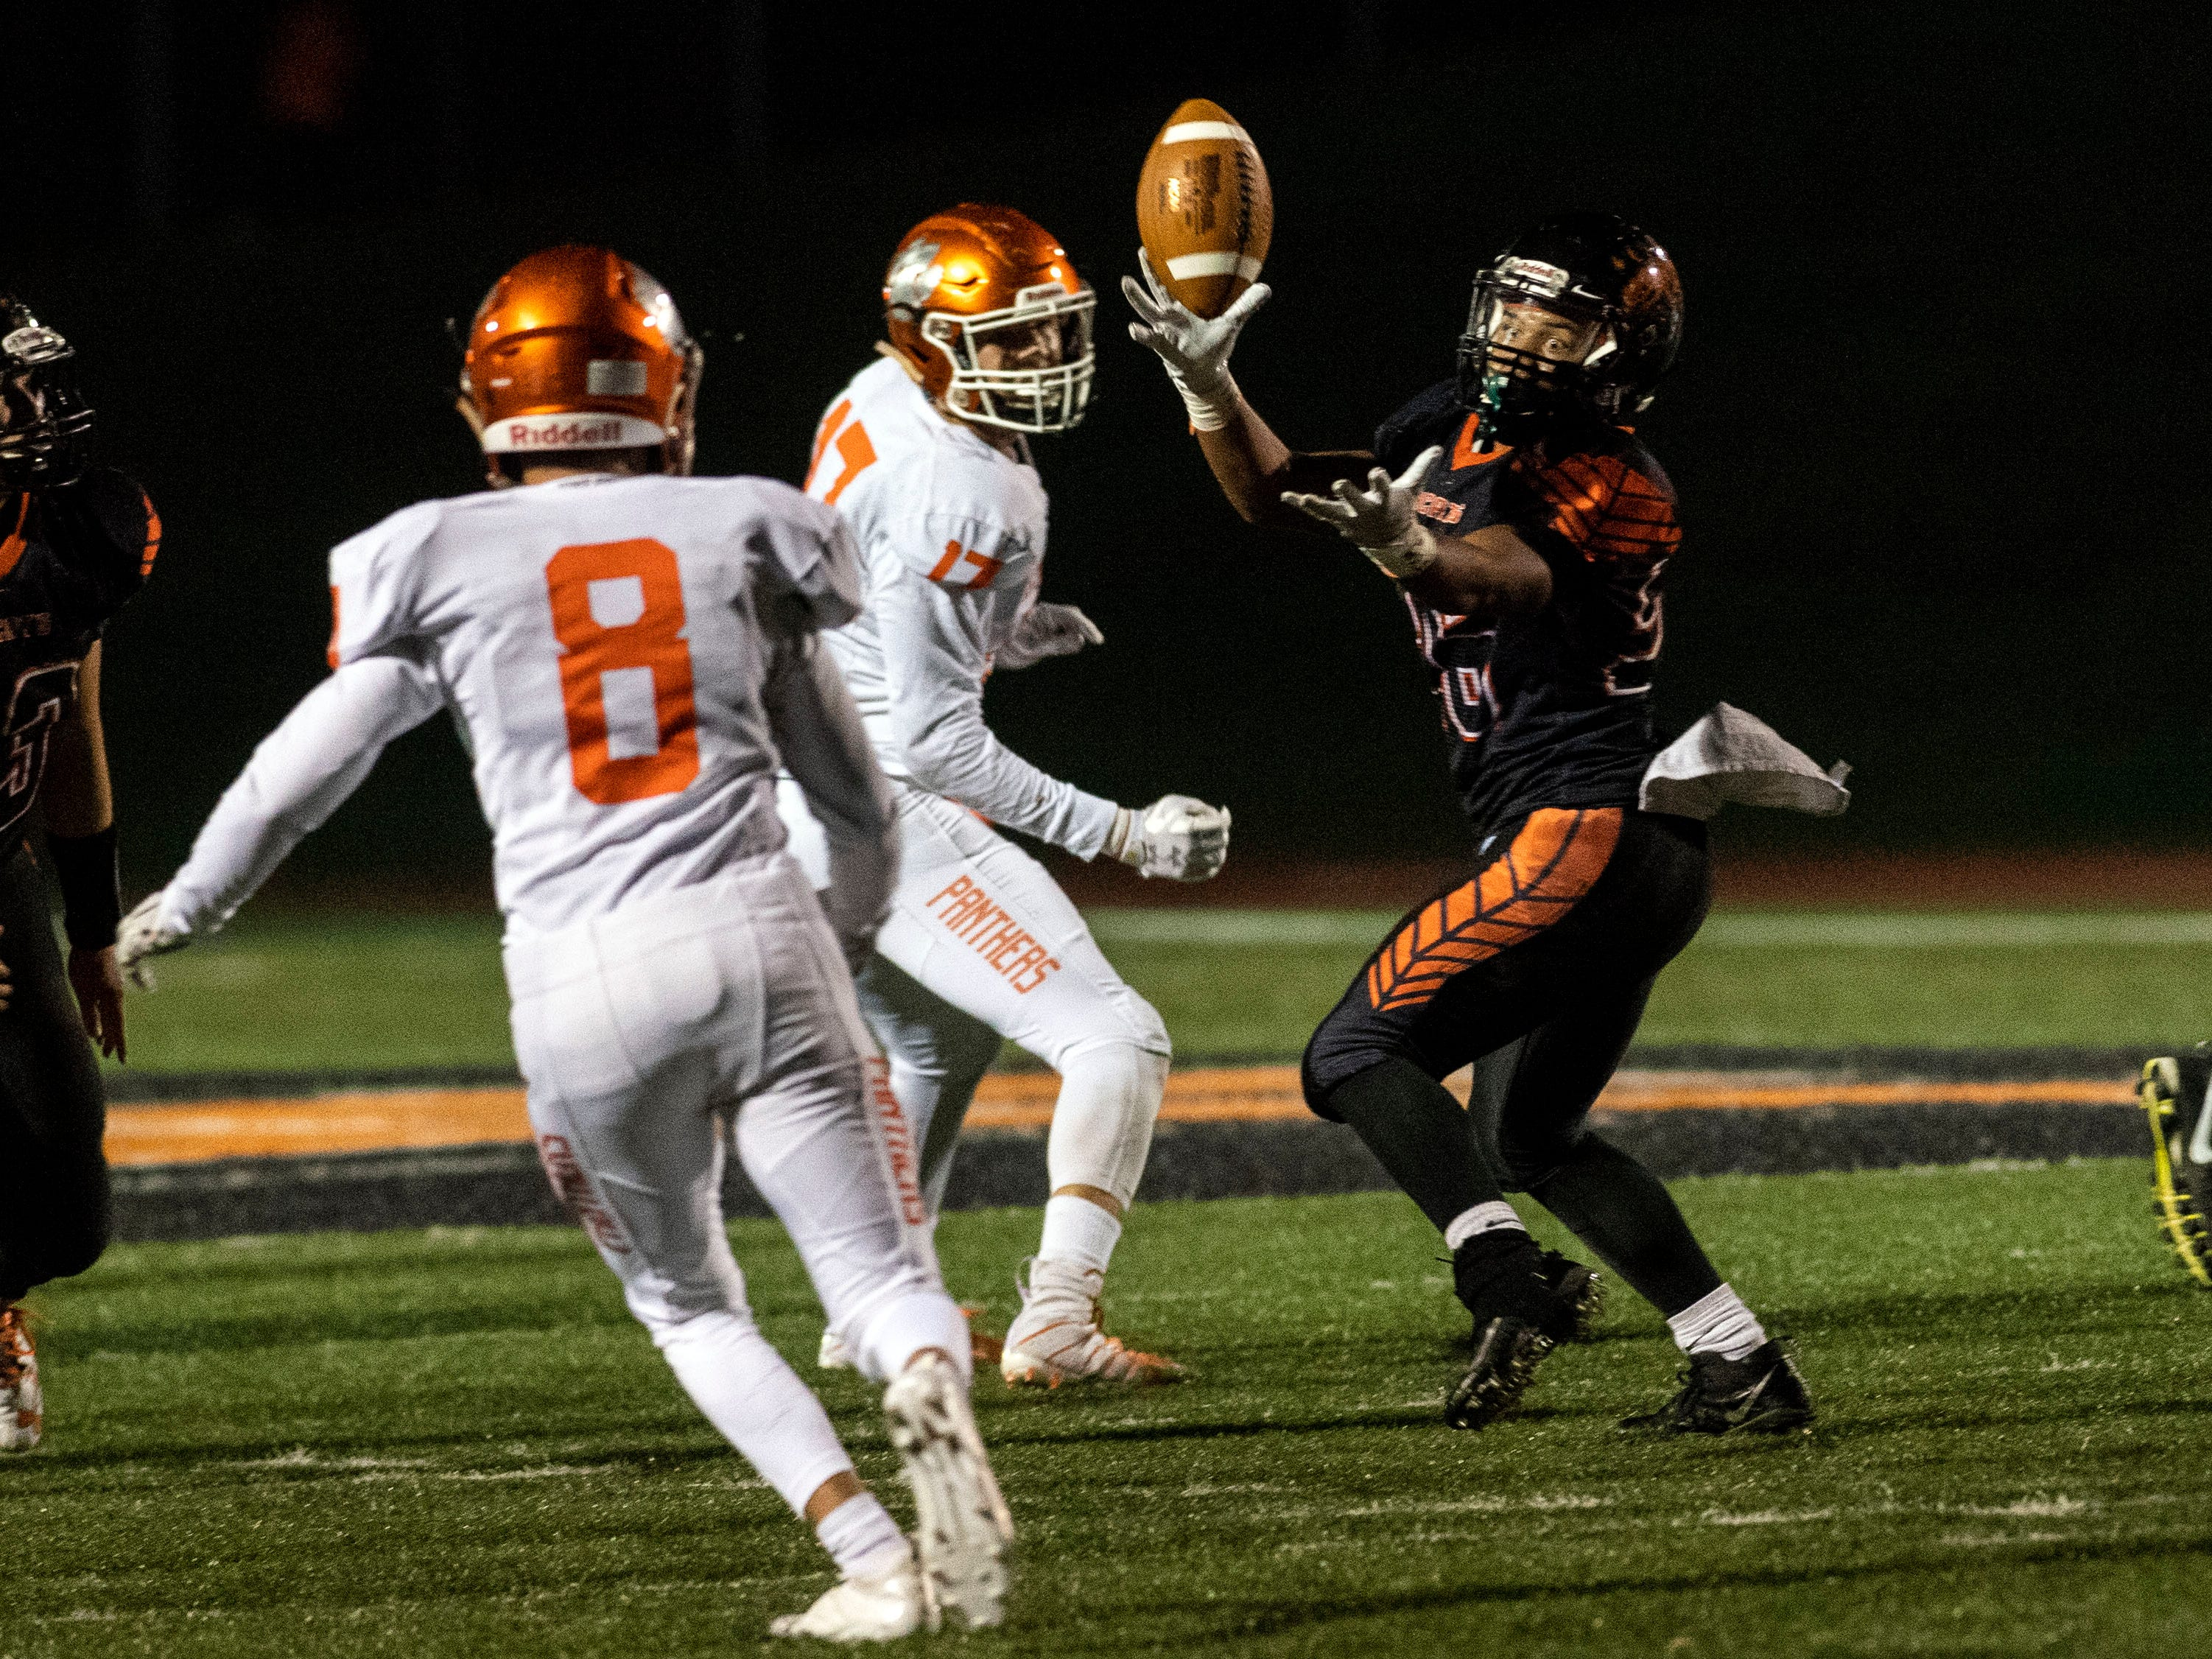 Northeastern's Manny Capo (26) unsuccessfully reaches for a pass during a YAIAA Division I football game at Northeastern High School on Friday, Oct. 12, 2018. The Central York Panthers beat the Northeastern Bobcats, 44-7.